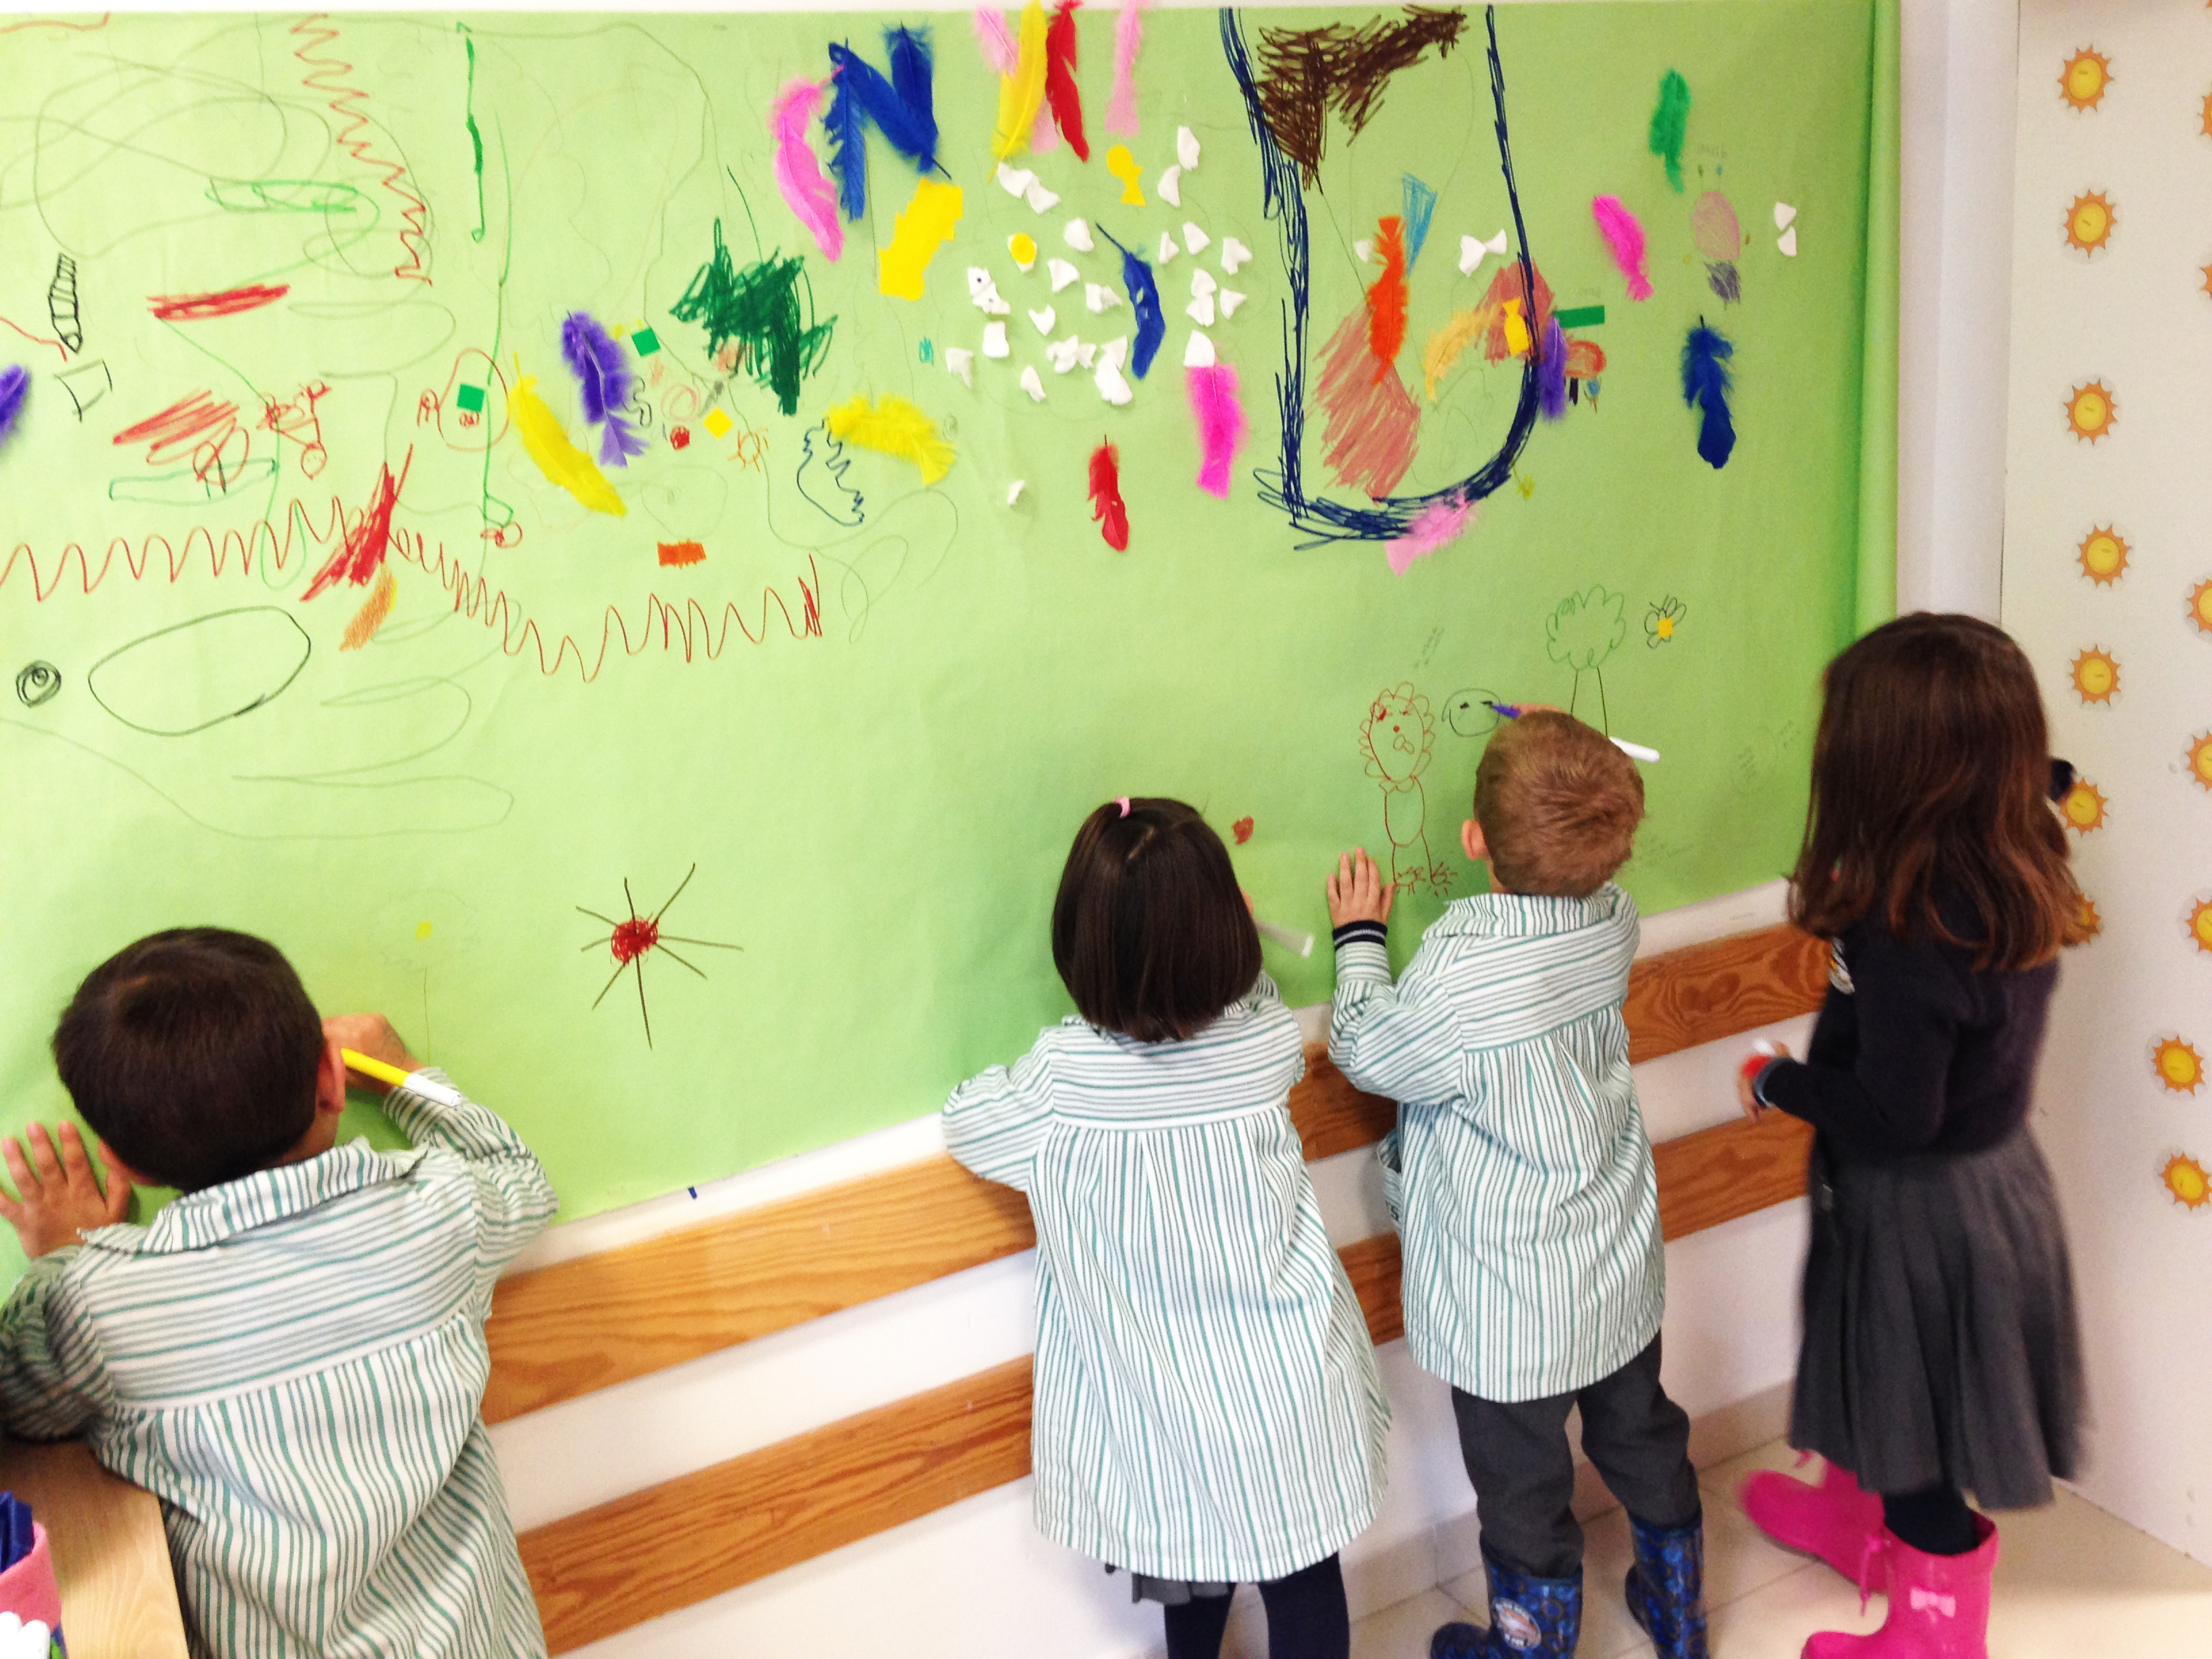 creativity in classrooms Despite budget cuts, teachers can come up with clever ways to teach creativity in the classroom this will improve student engagement and make learning fun.